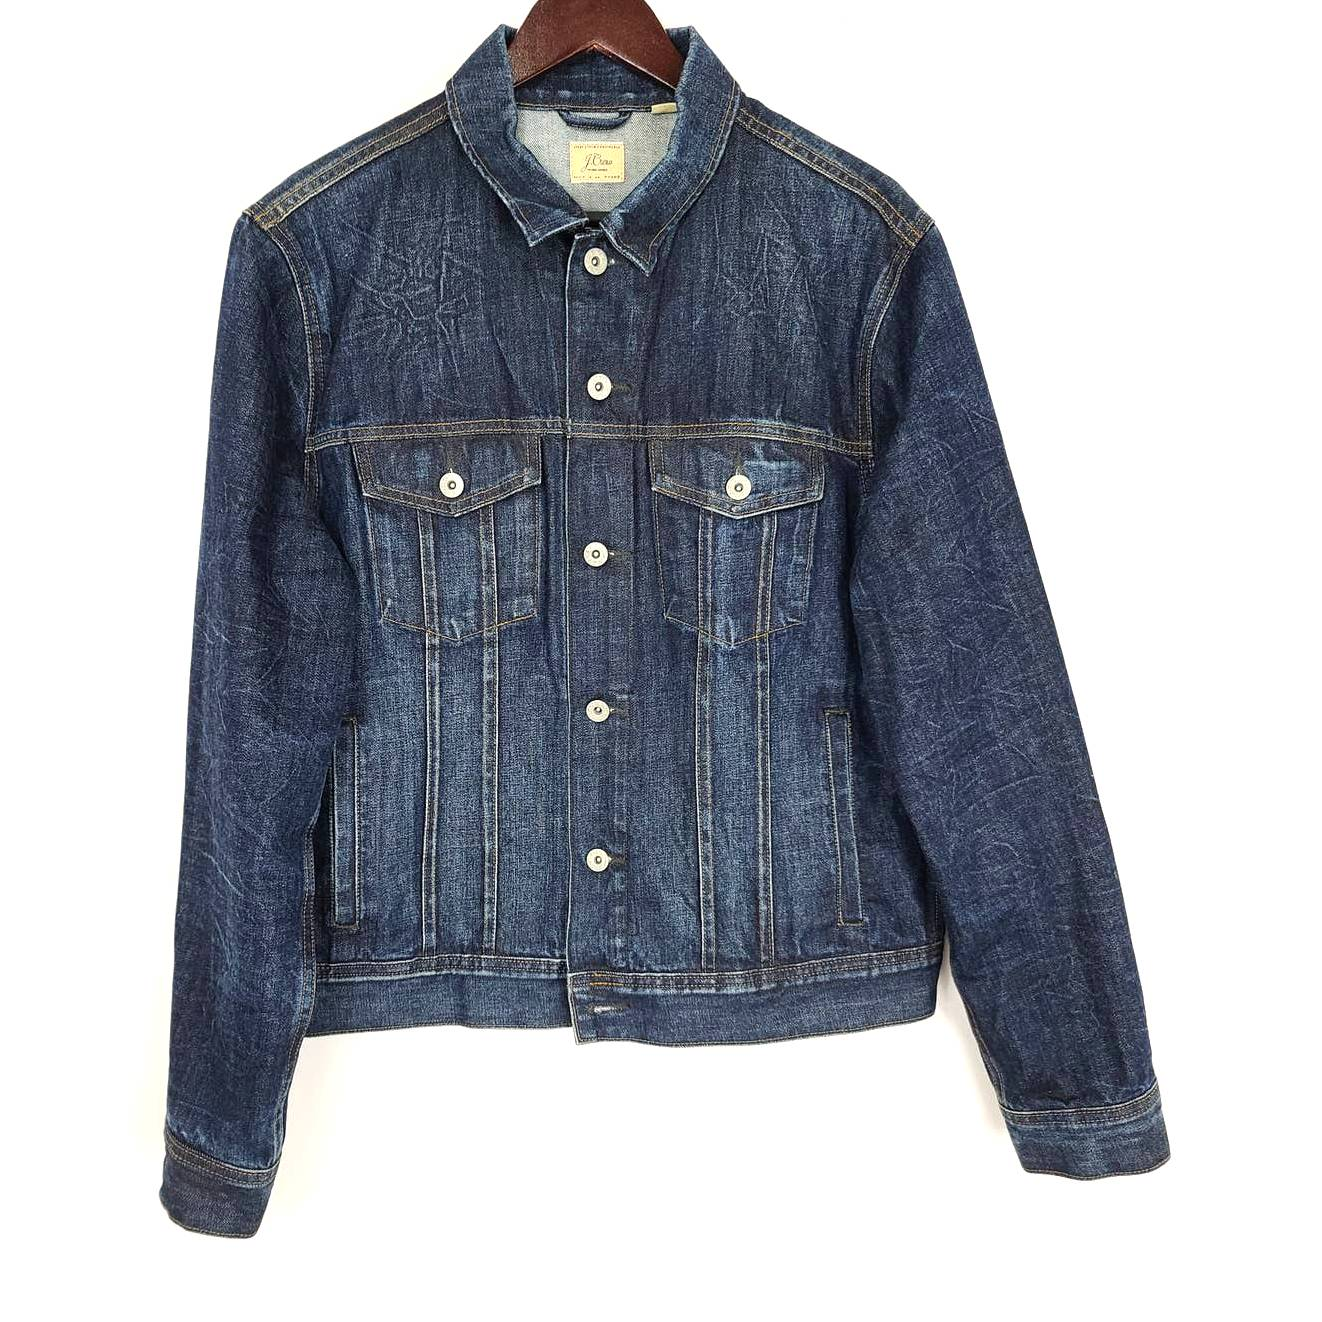 J Crew Denim Jacket in Walden Wash